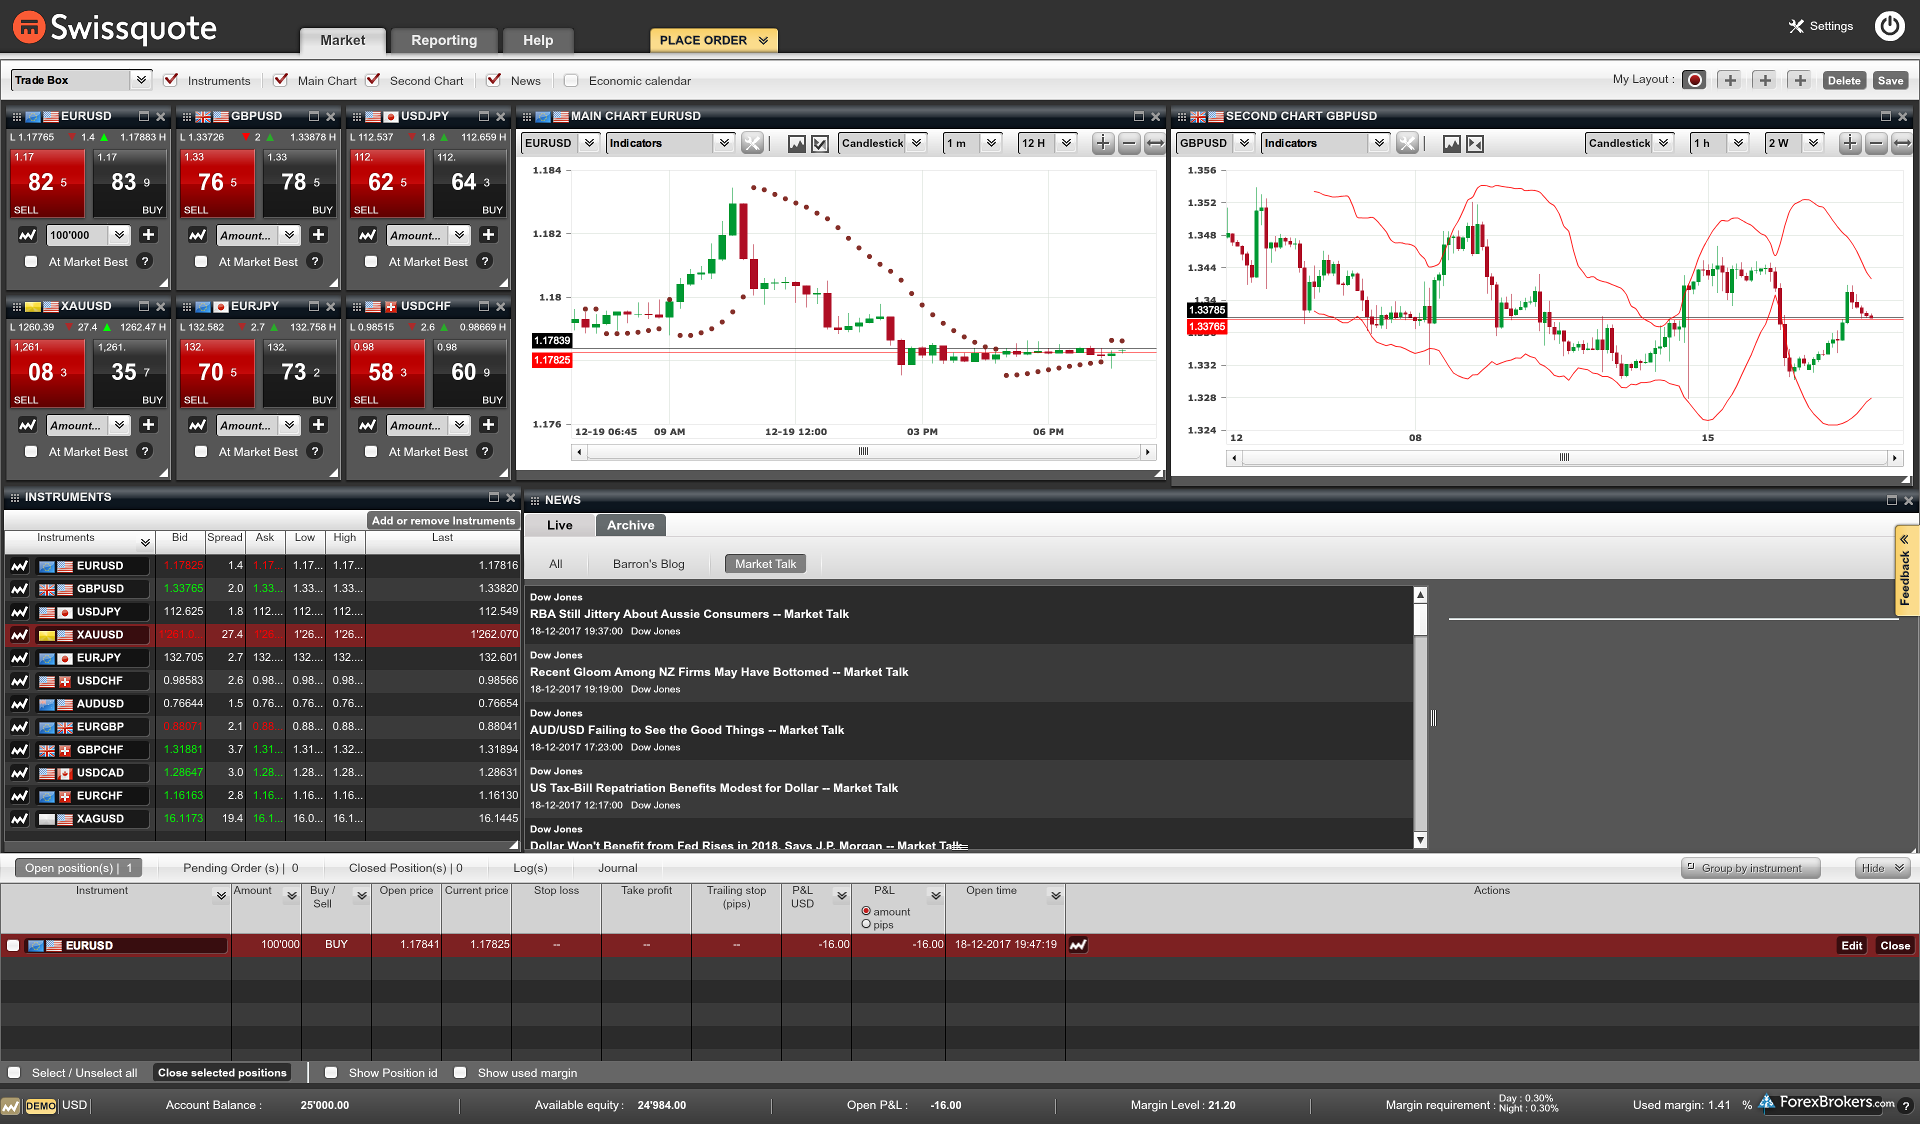 Swissquote bank Advanced Trader web platform